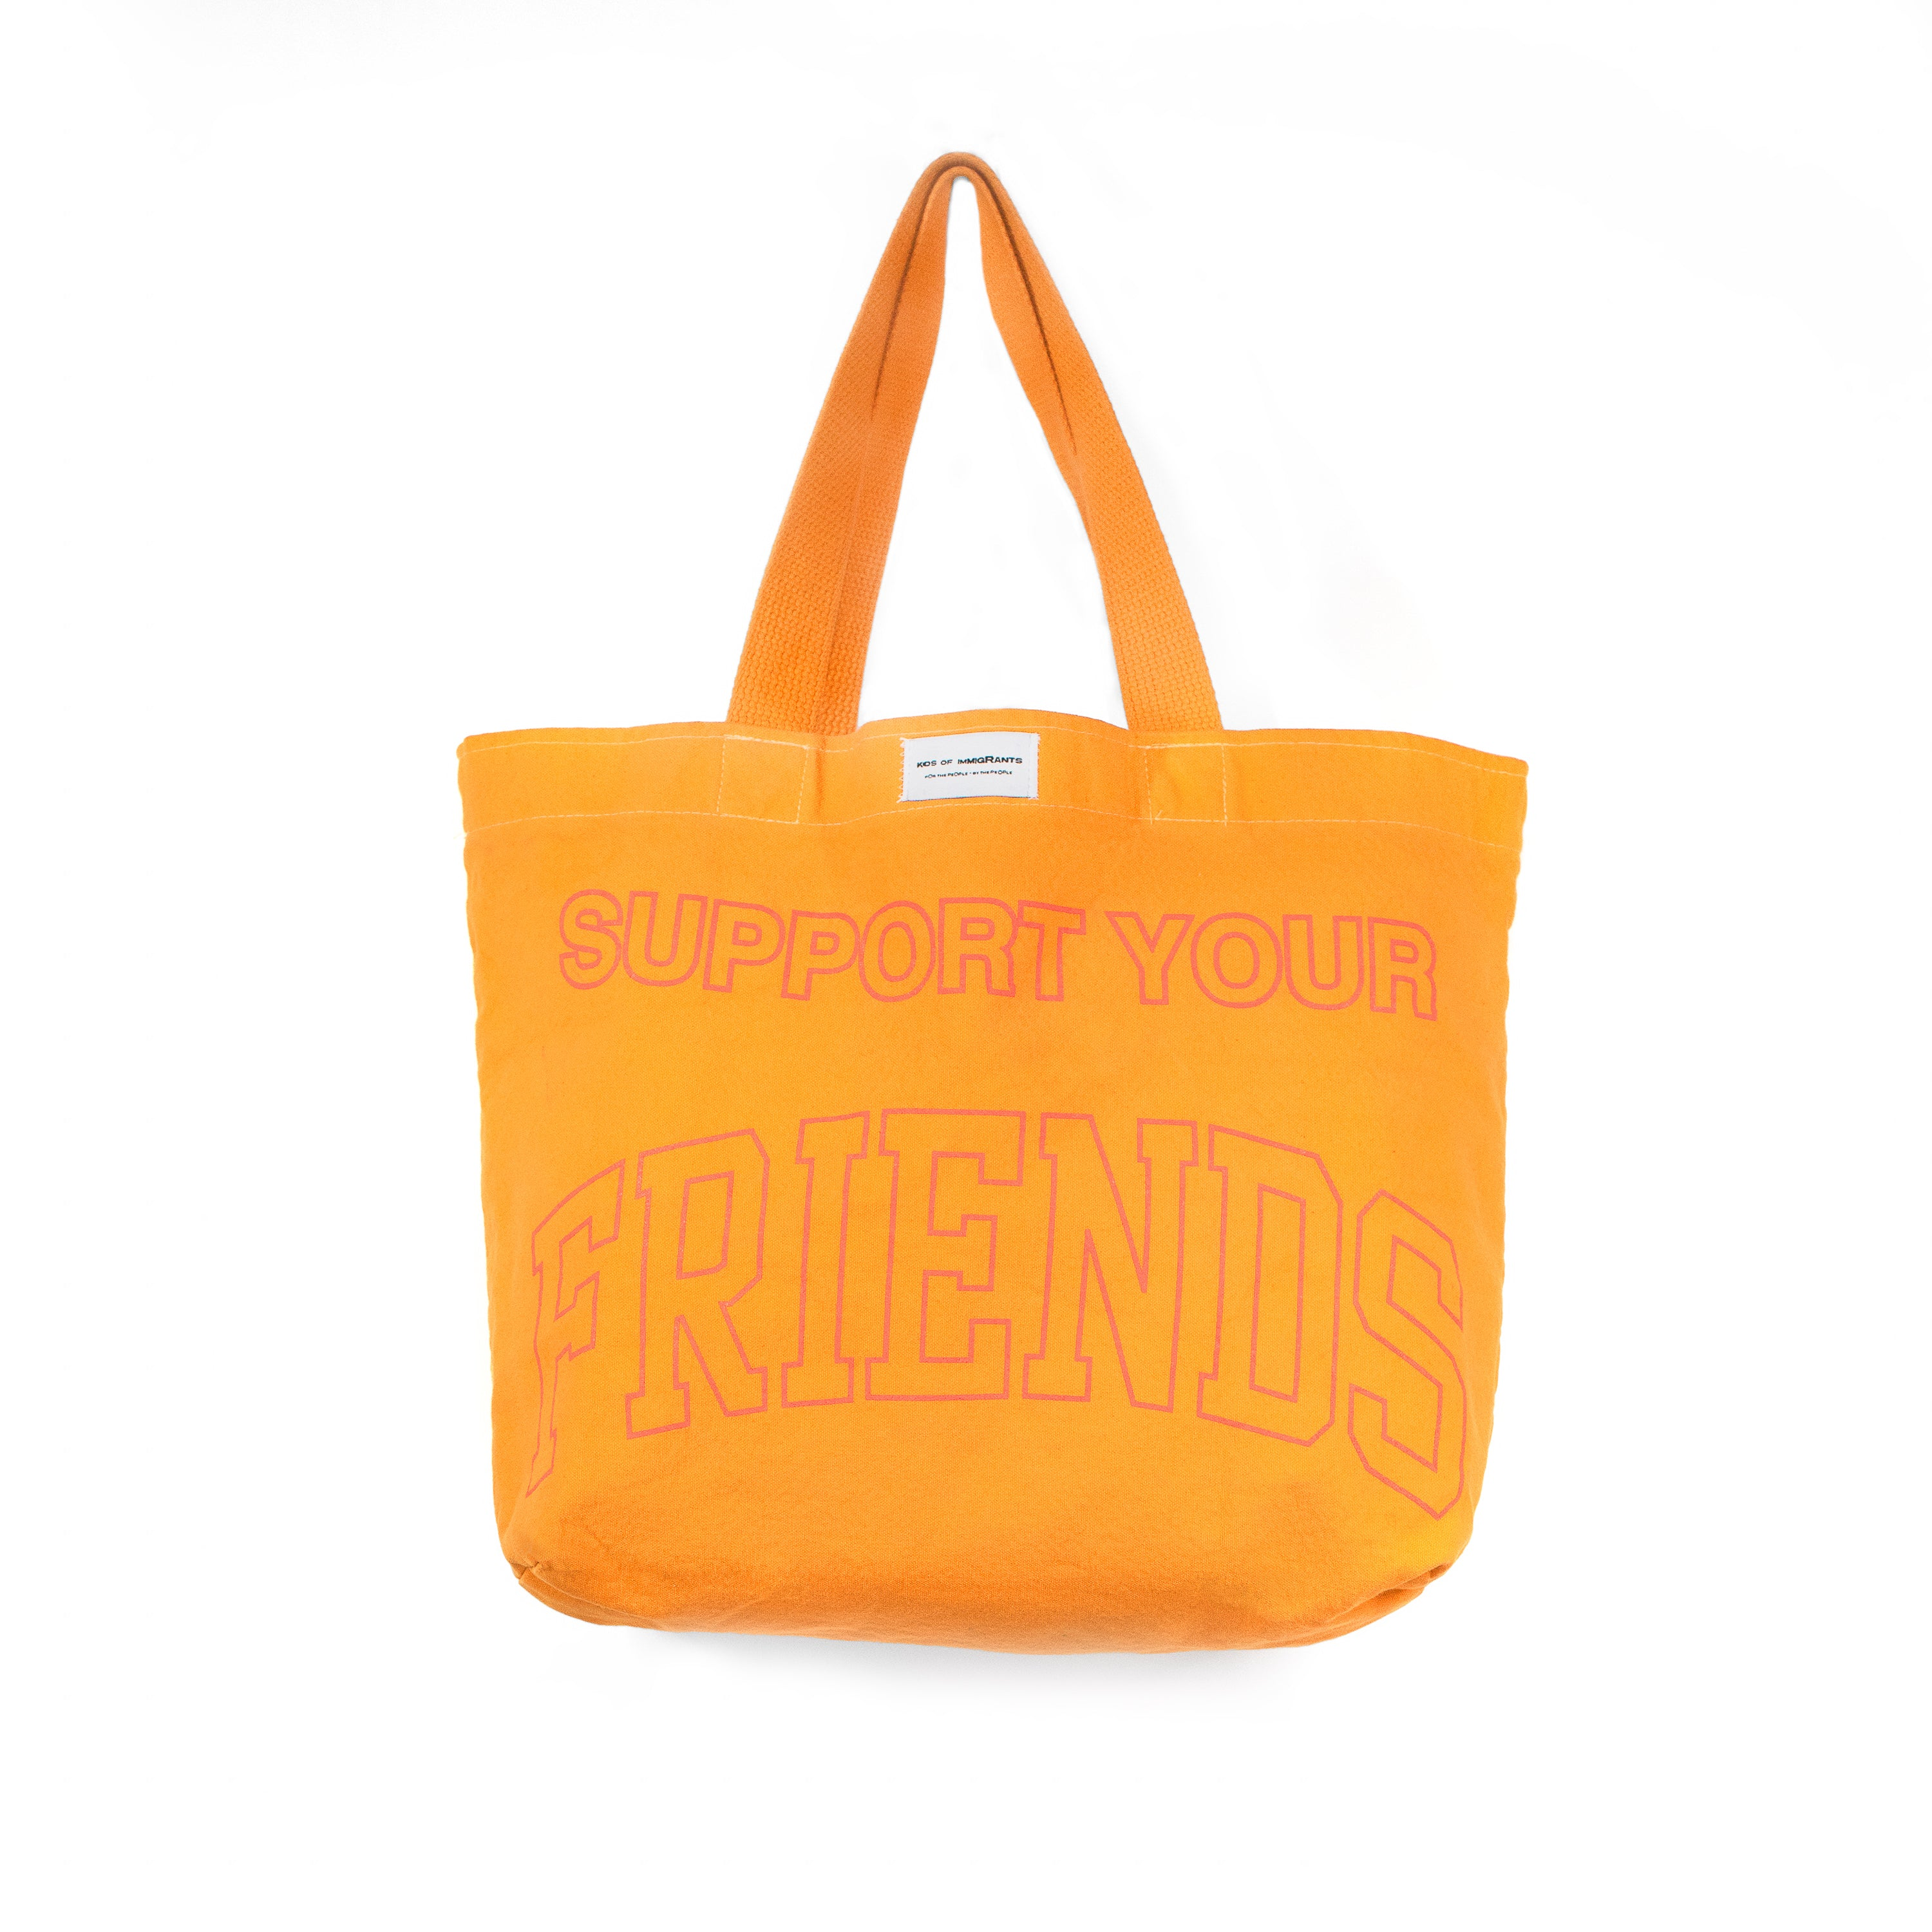 SUPPORT YOUR FRIENDS TOTE BAG - ORANGE